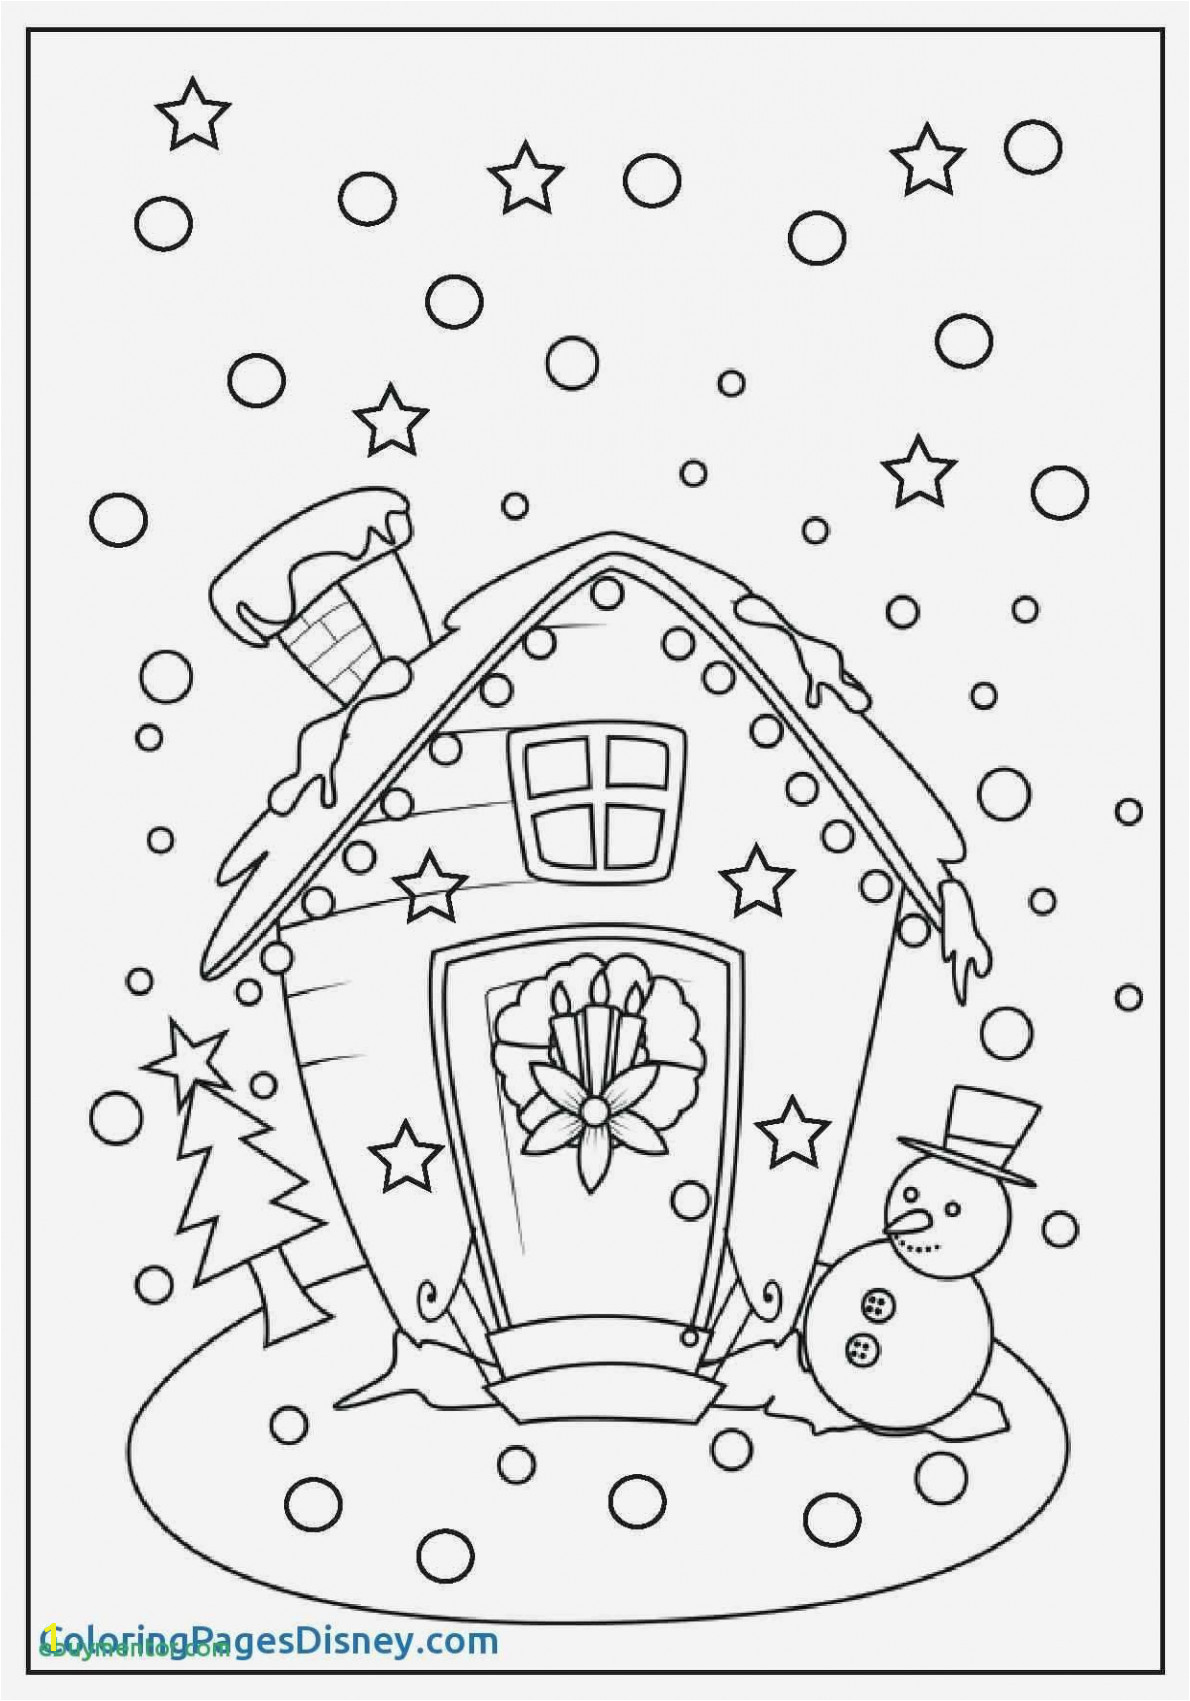 Free Printables Coloring Pages For Kids Christmas Coloring Pages Difficult for Adults Difficult Christmas Coloring Pages